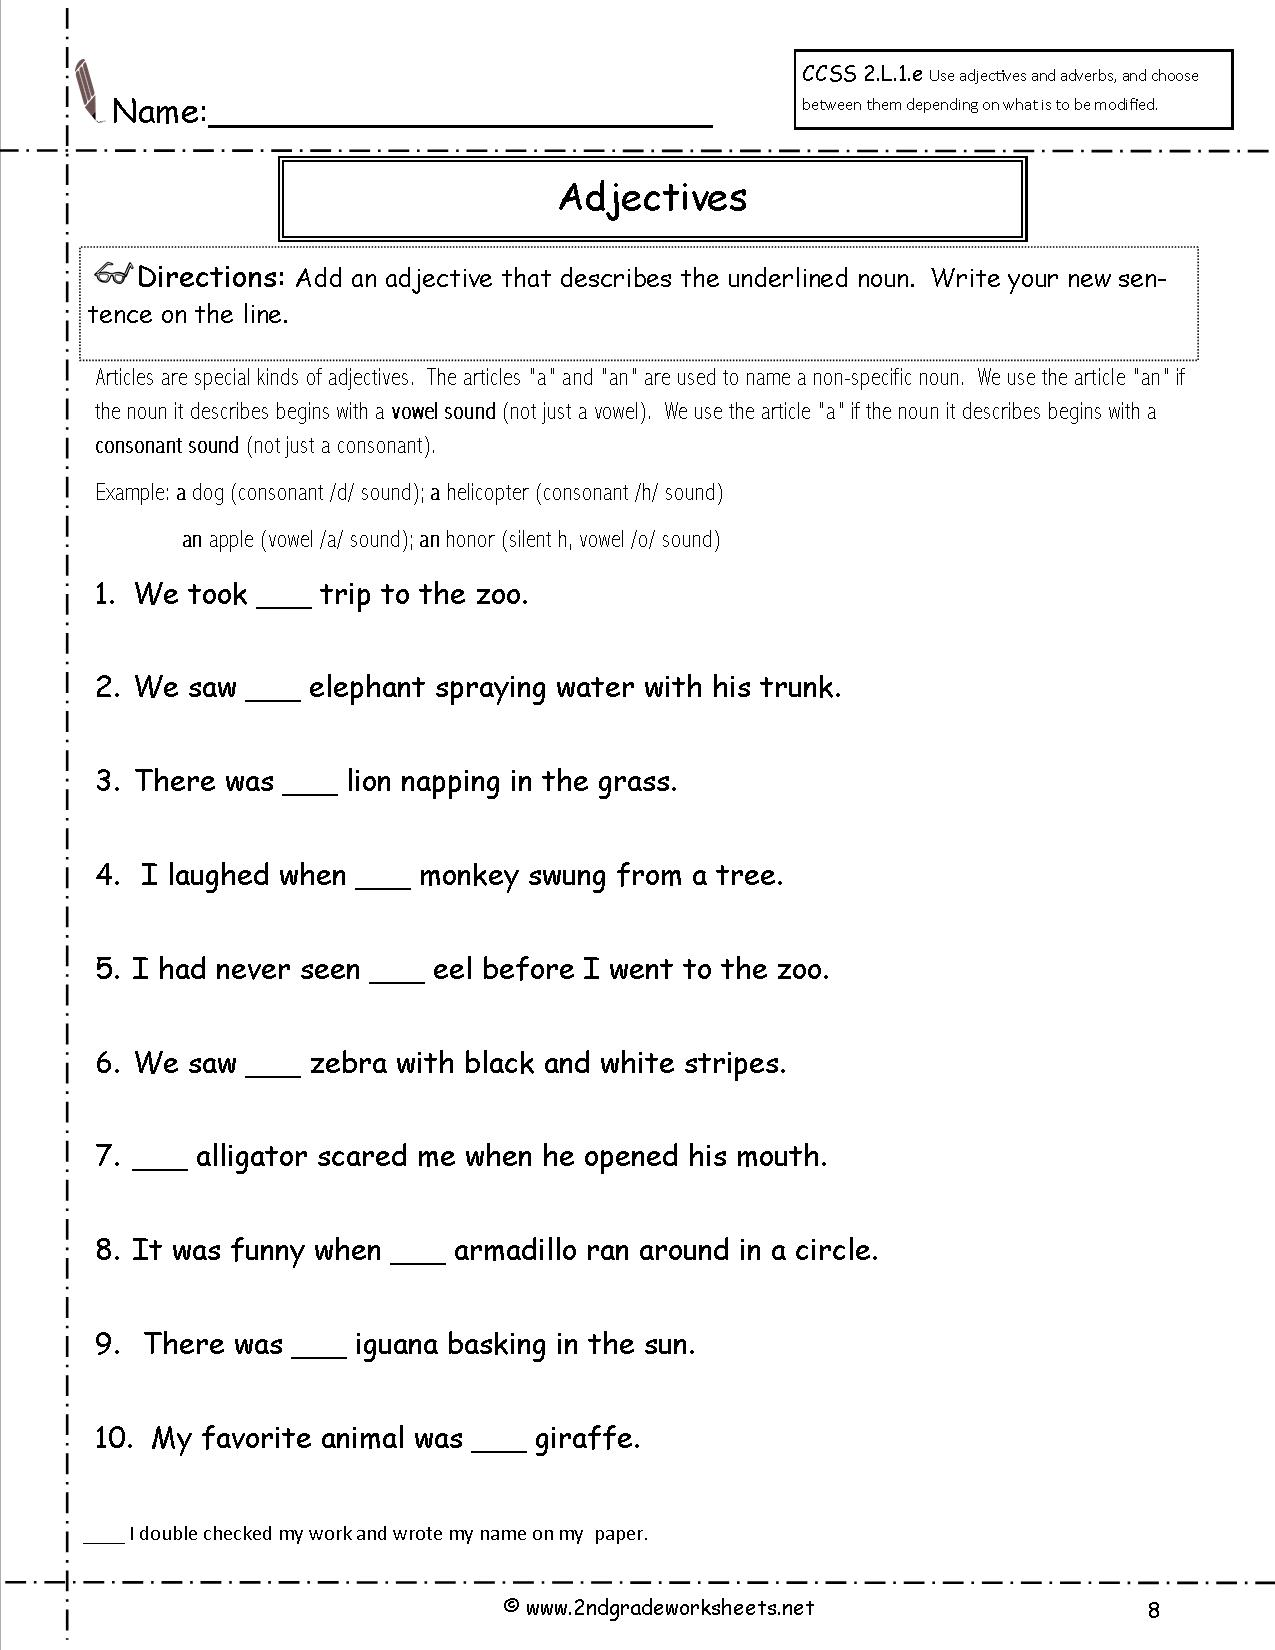 14 Best Images Of Forming Sentences Worksheets